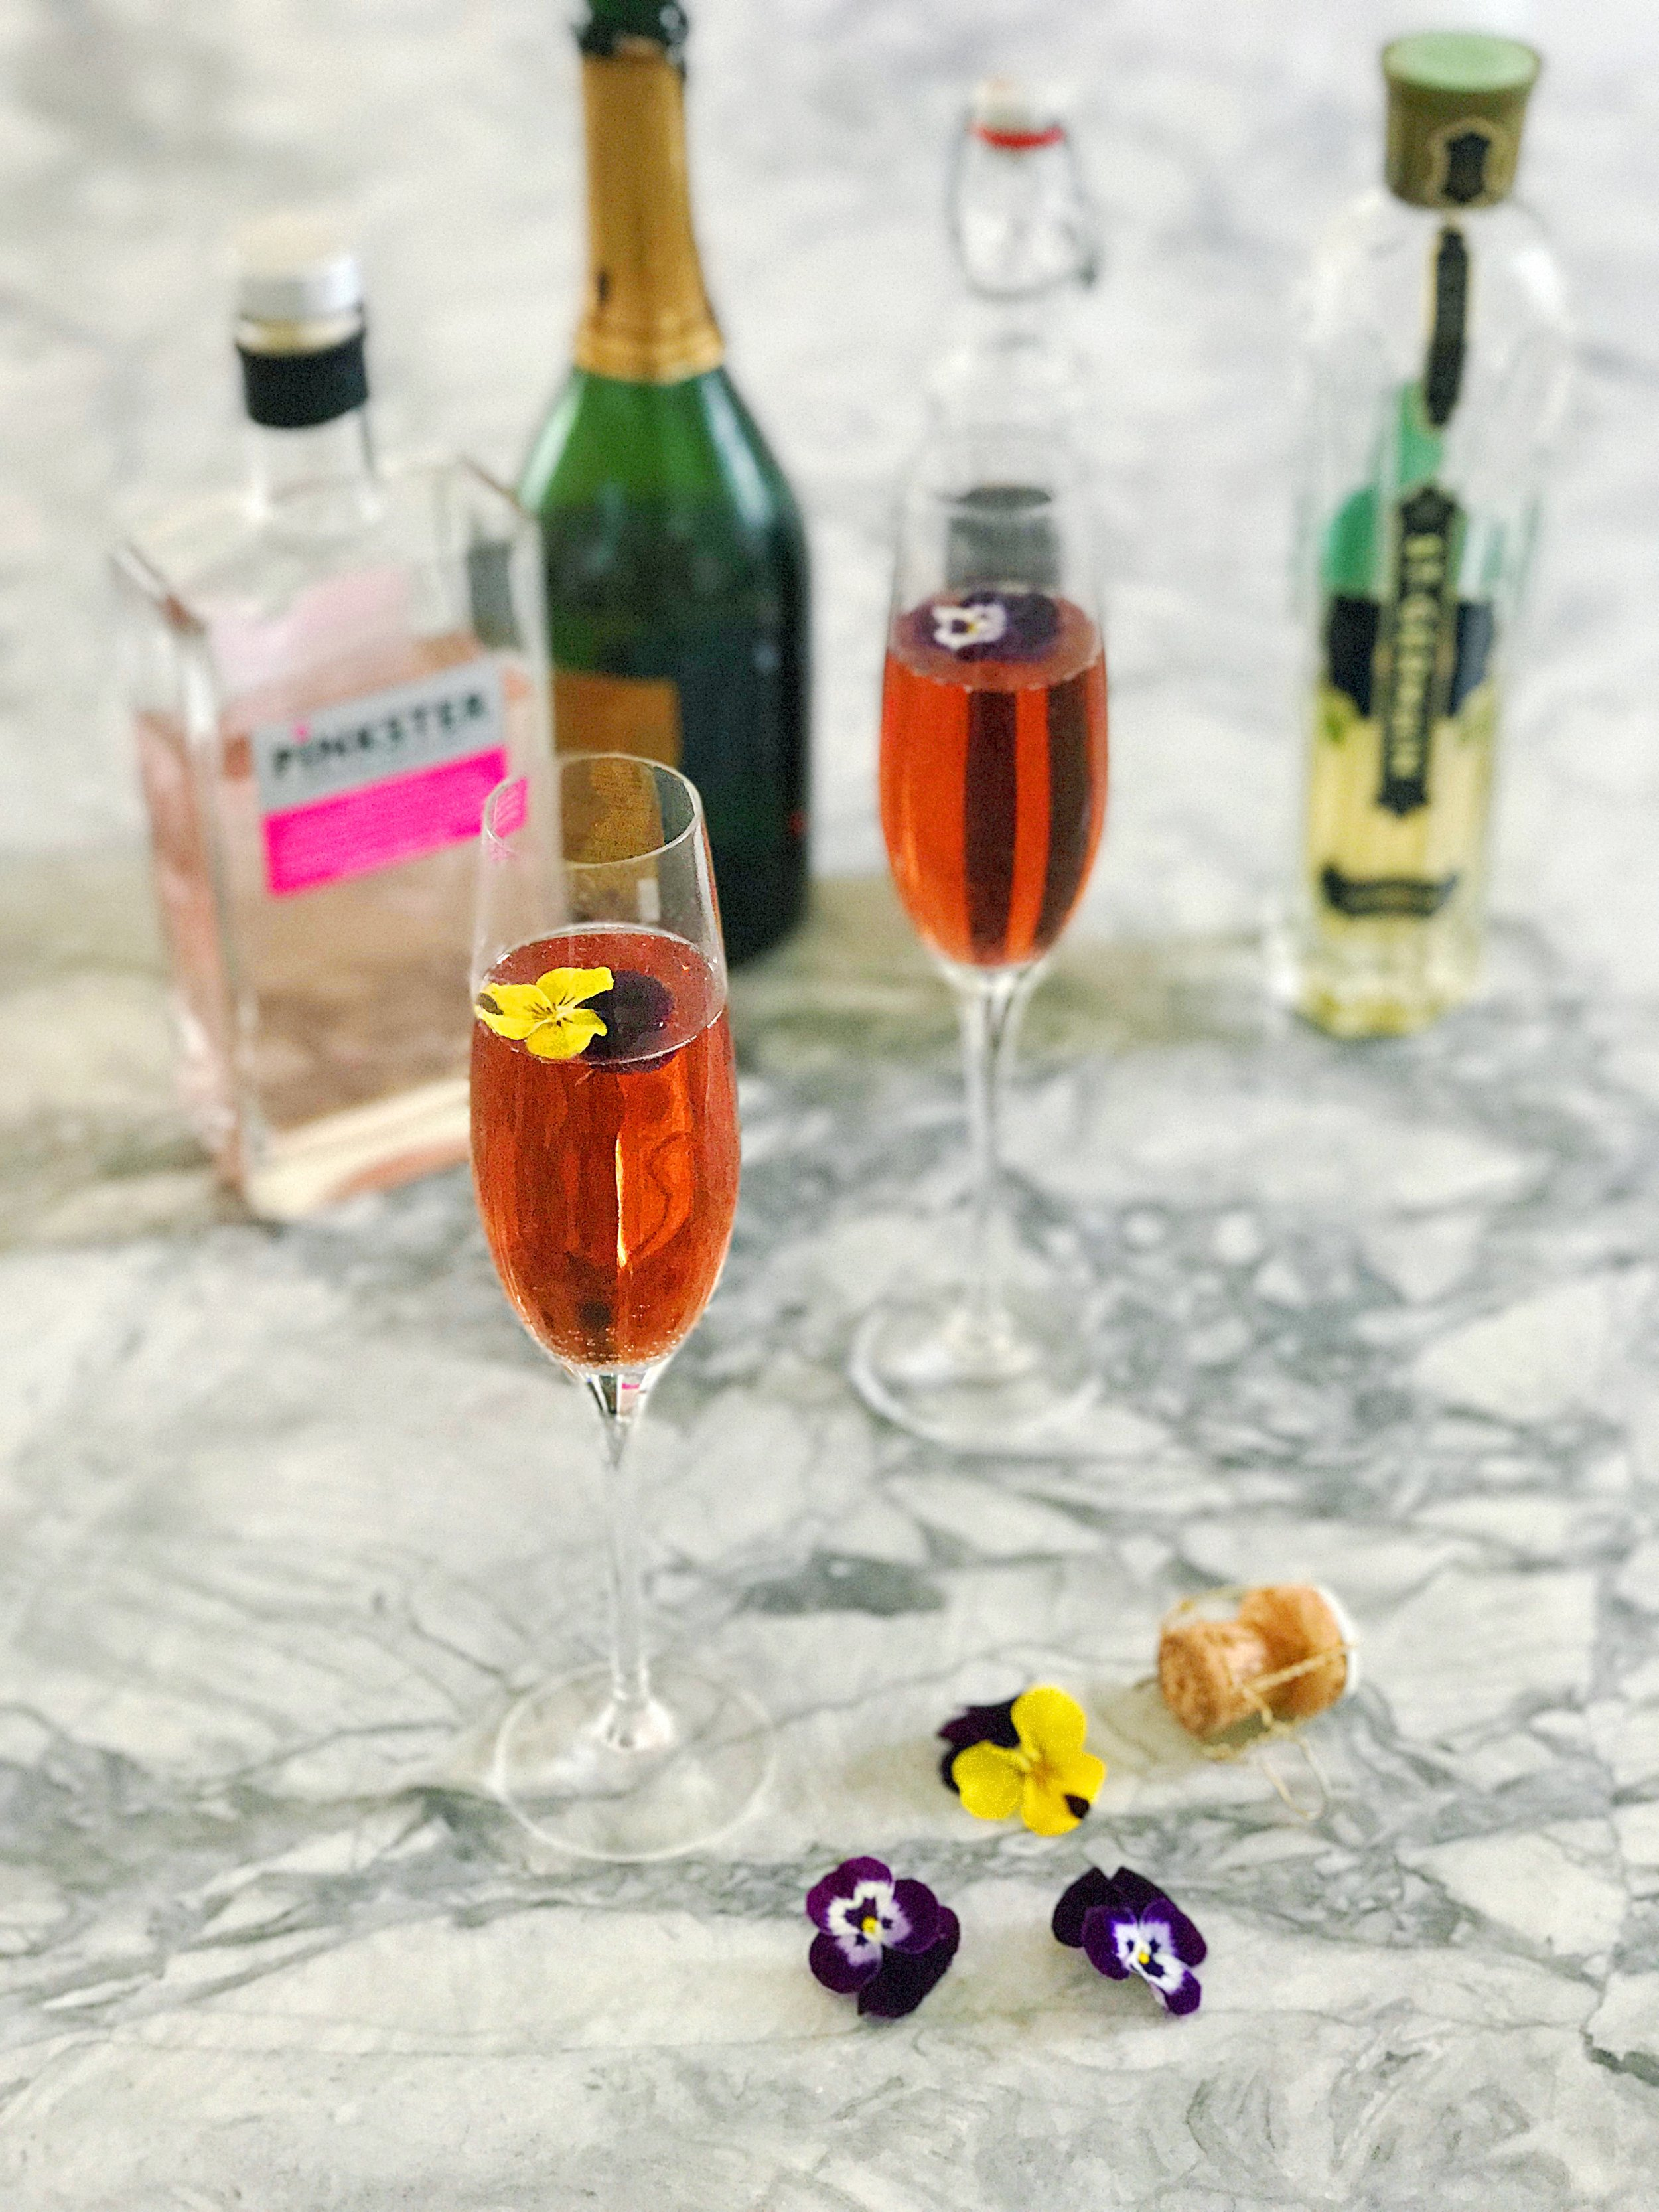 Pinkster Gin, St Germain, Crème de cassis, prosecco.  Any combination of the above would make a great cocktail.